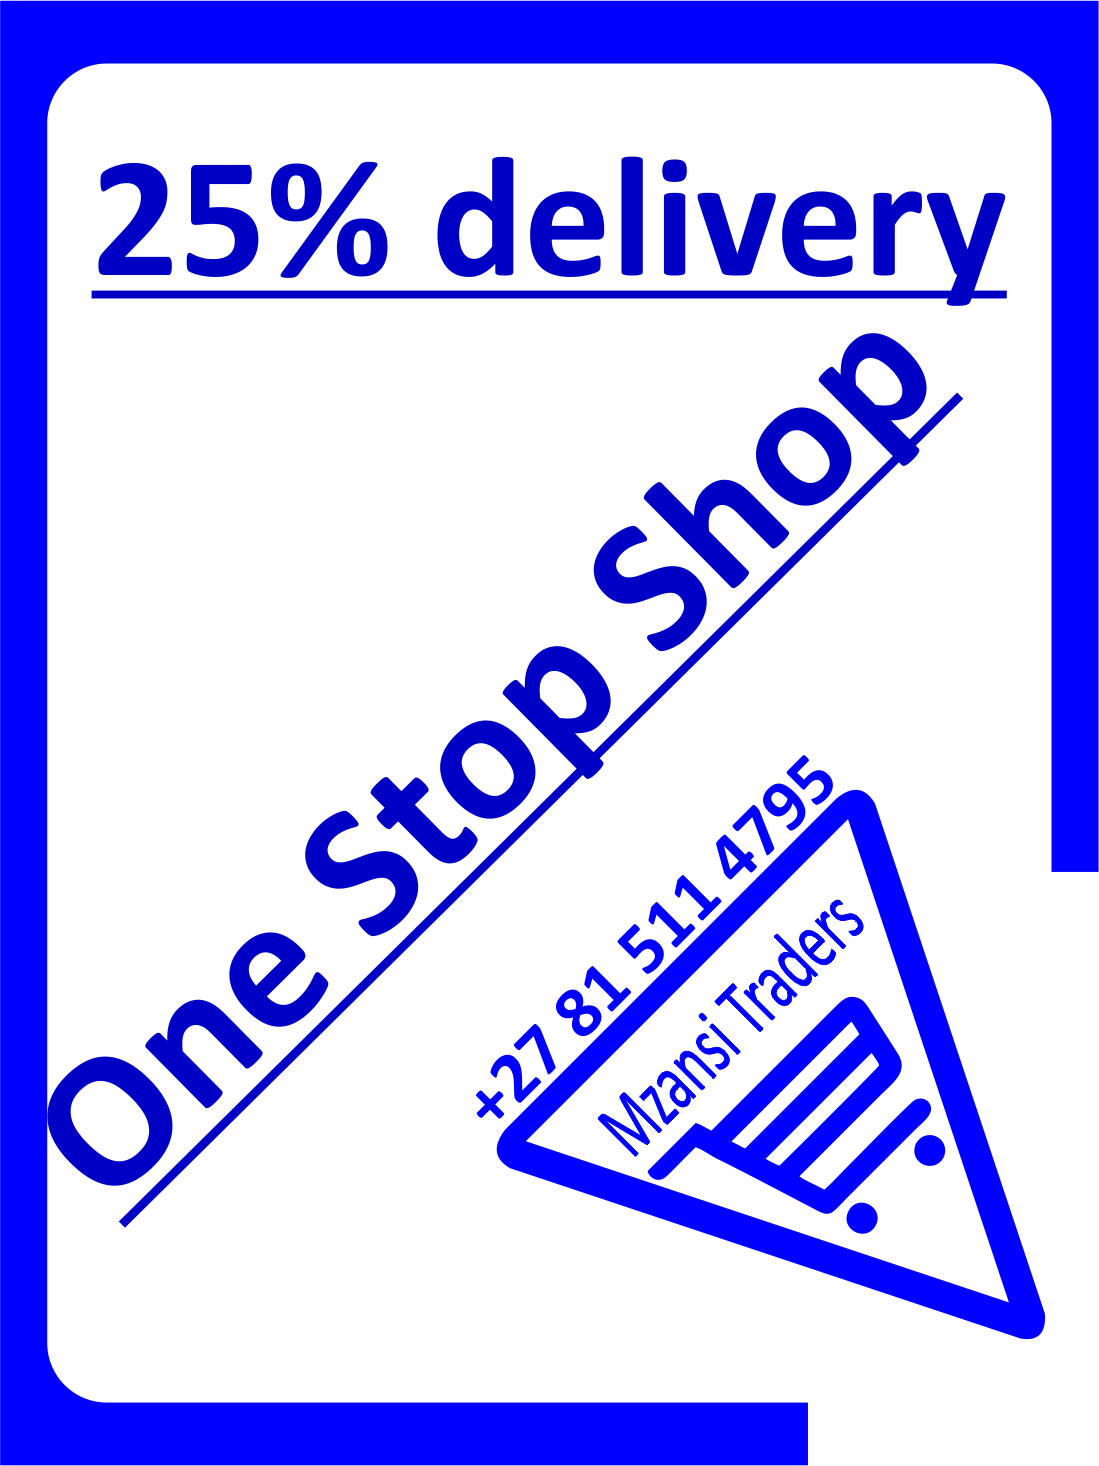 Mzansi Traders one Stop Shop - 25% delivery Zimbabwe Zambia Mozambique Lesotho Swaziland